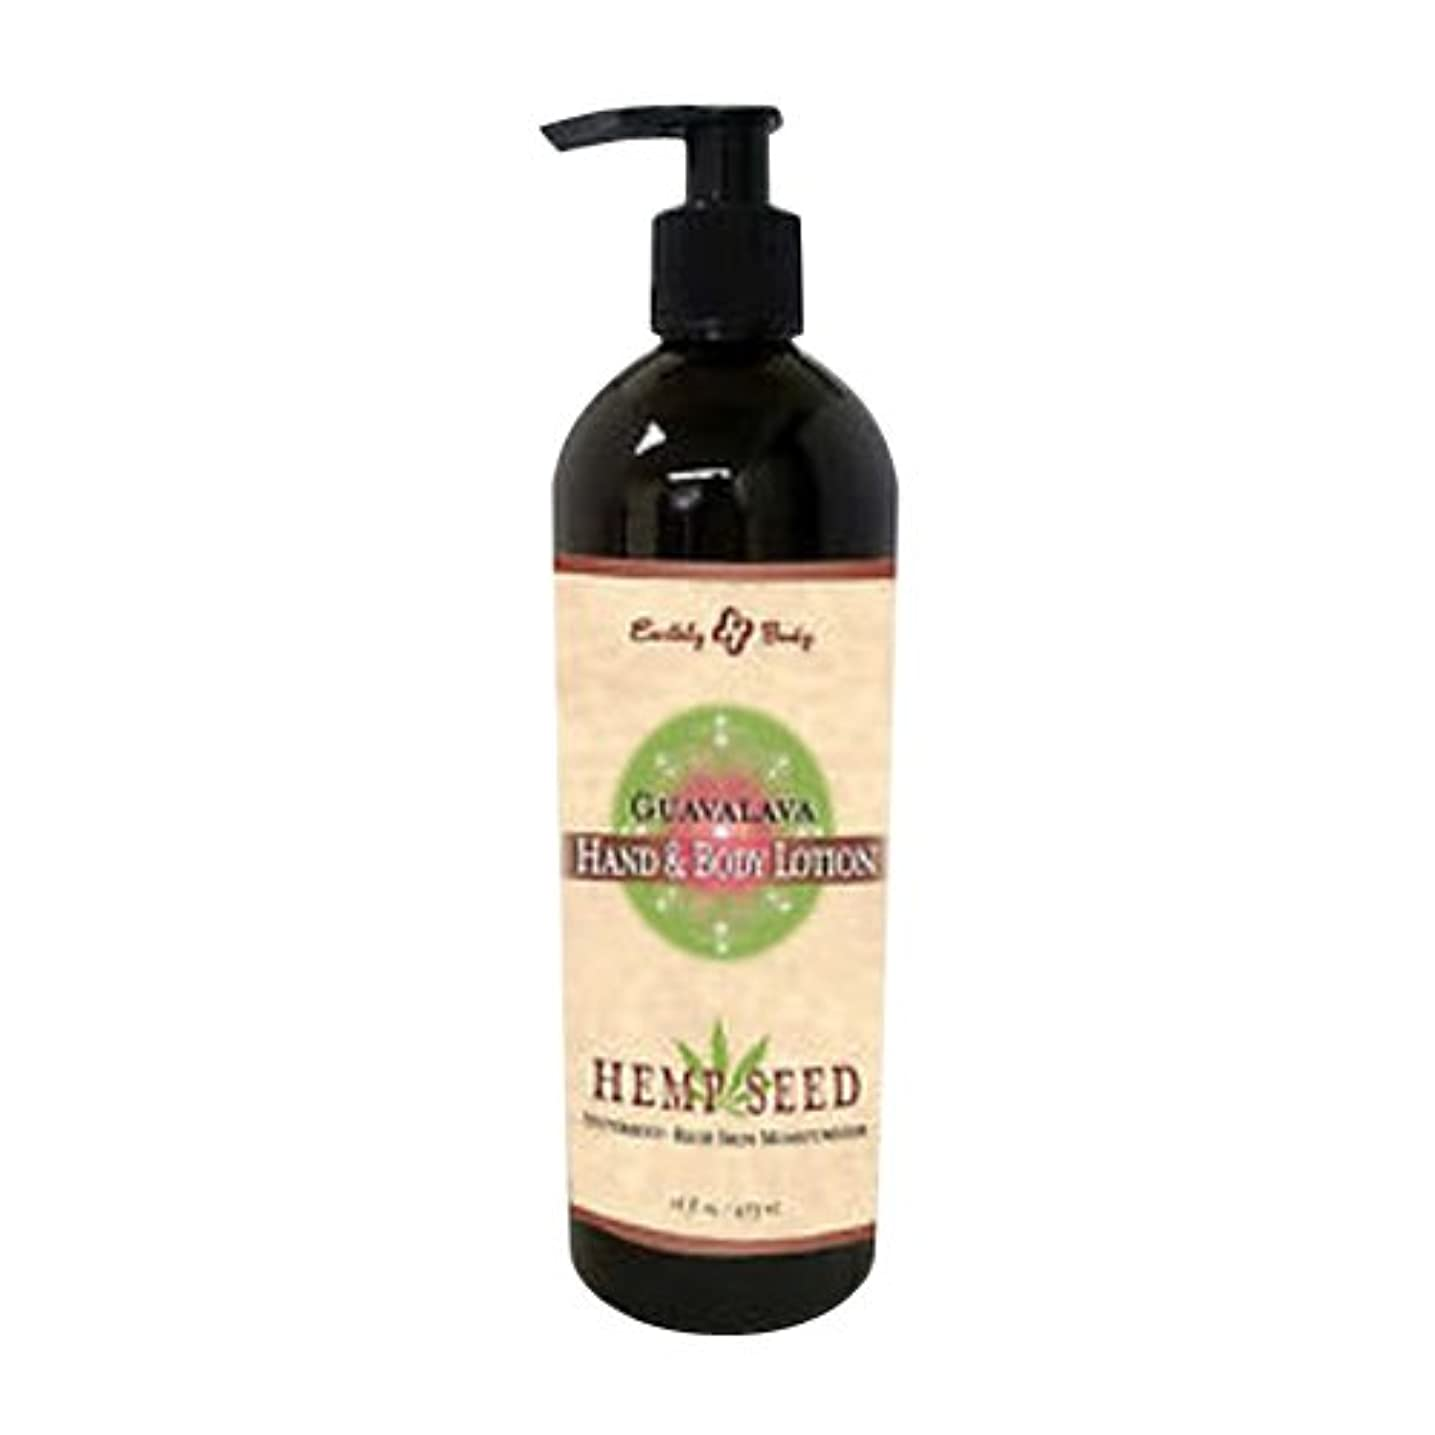 Hand & Body Lotion Velvet Guavalava 16oz by Earthly Body